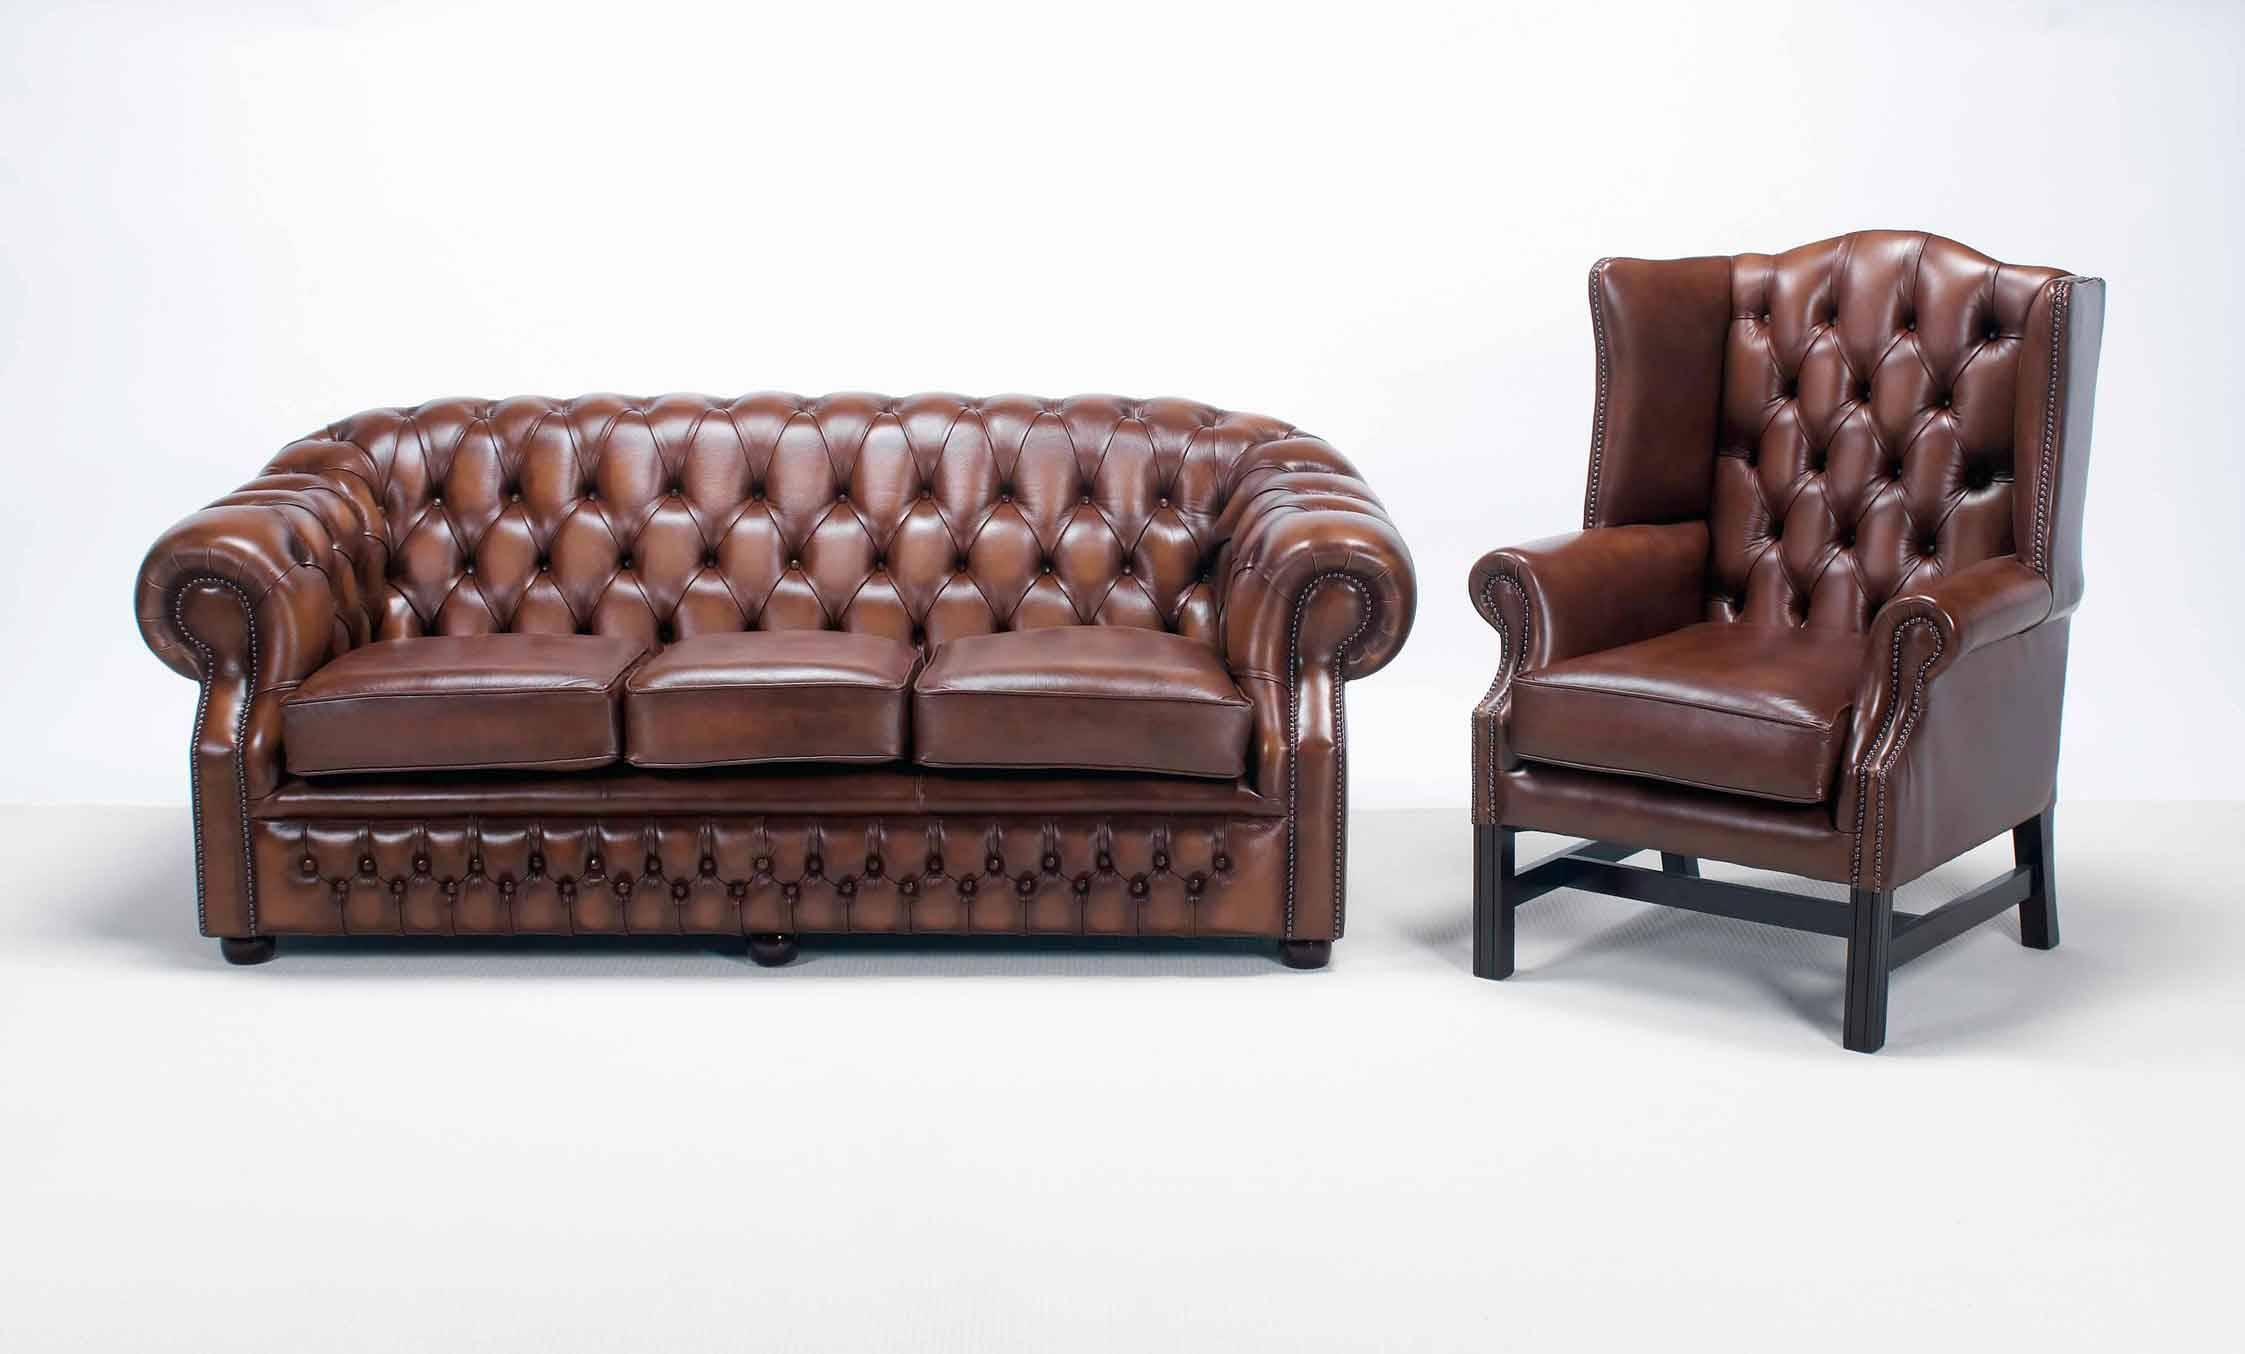 How To Identify A Real Chesterfield Sofa — Interior Home Design within Red Leather Chesterfield Chairs (Image 10 of 15)